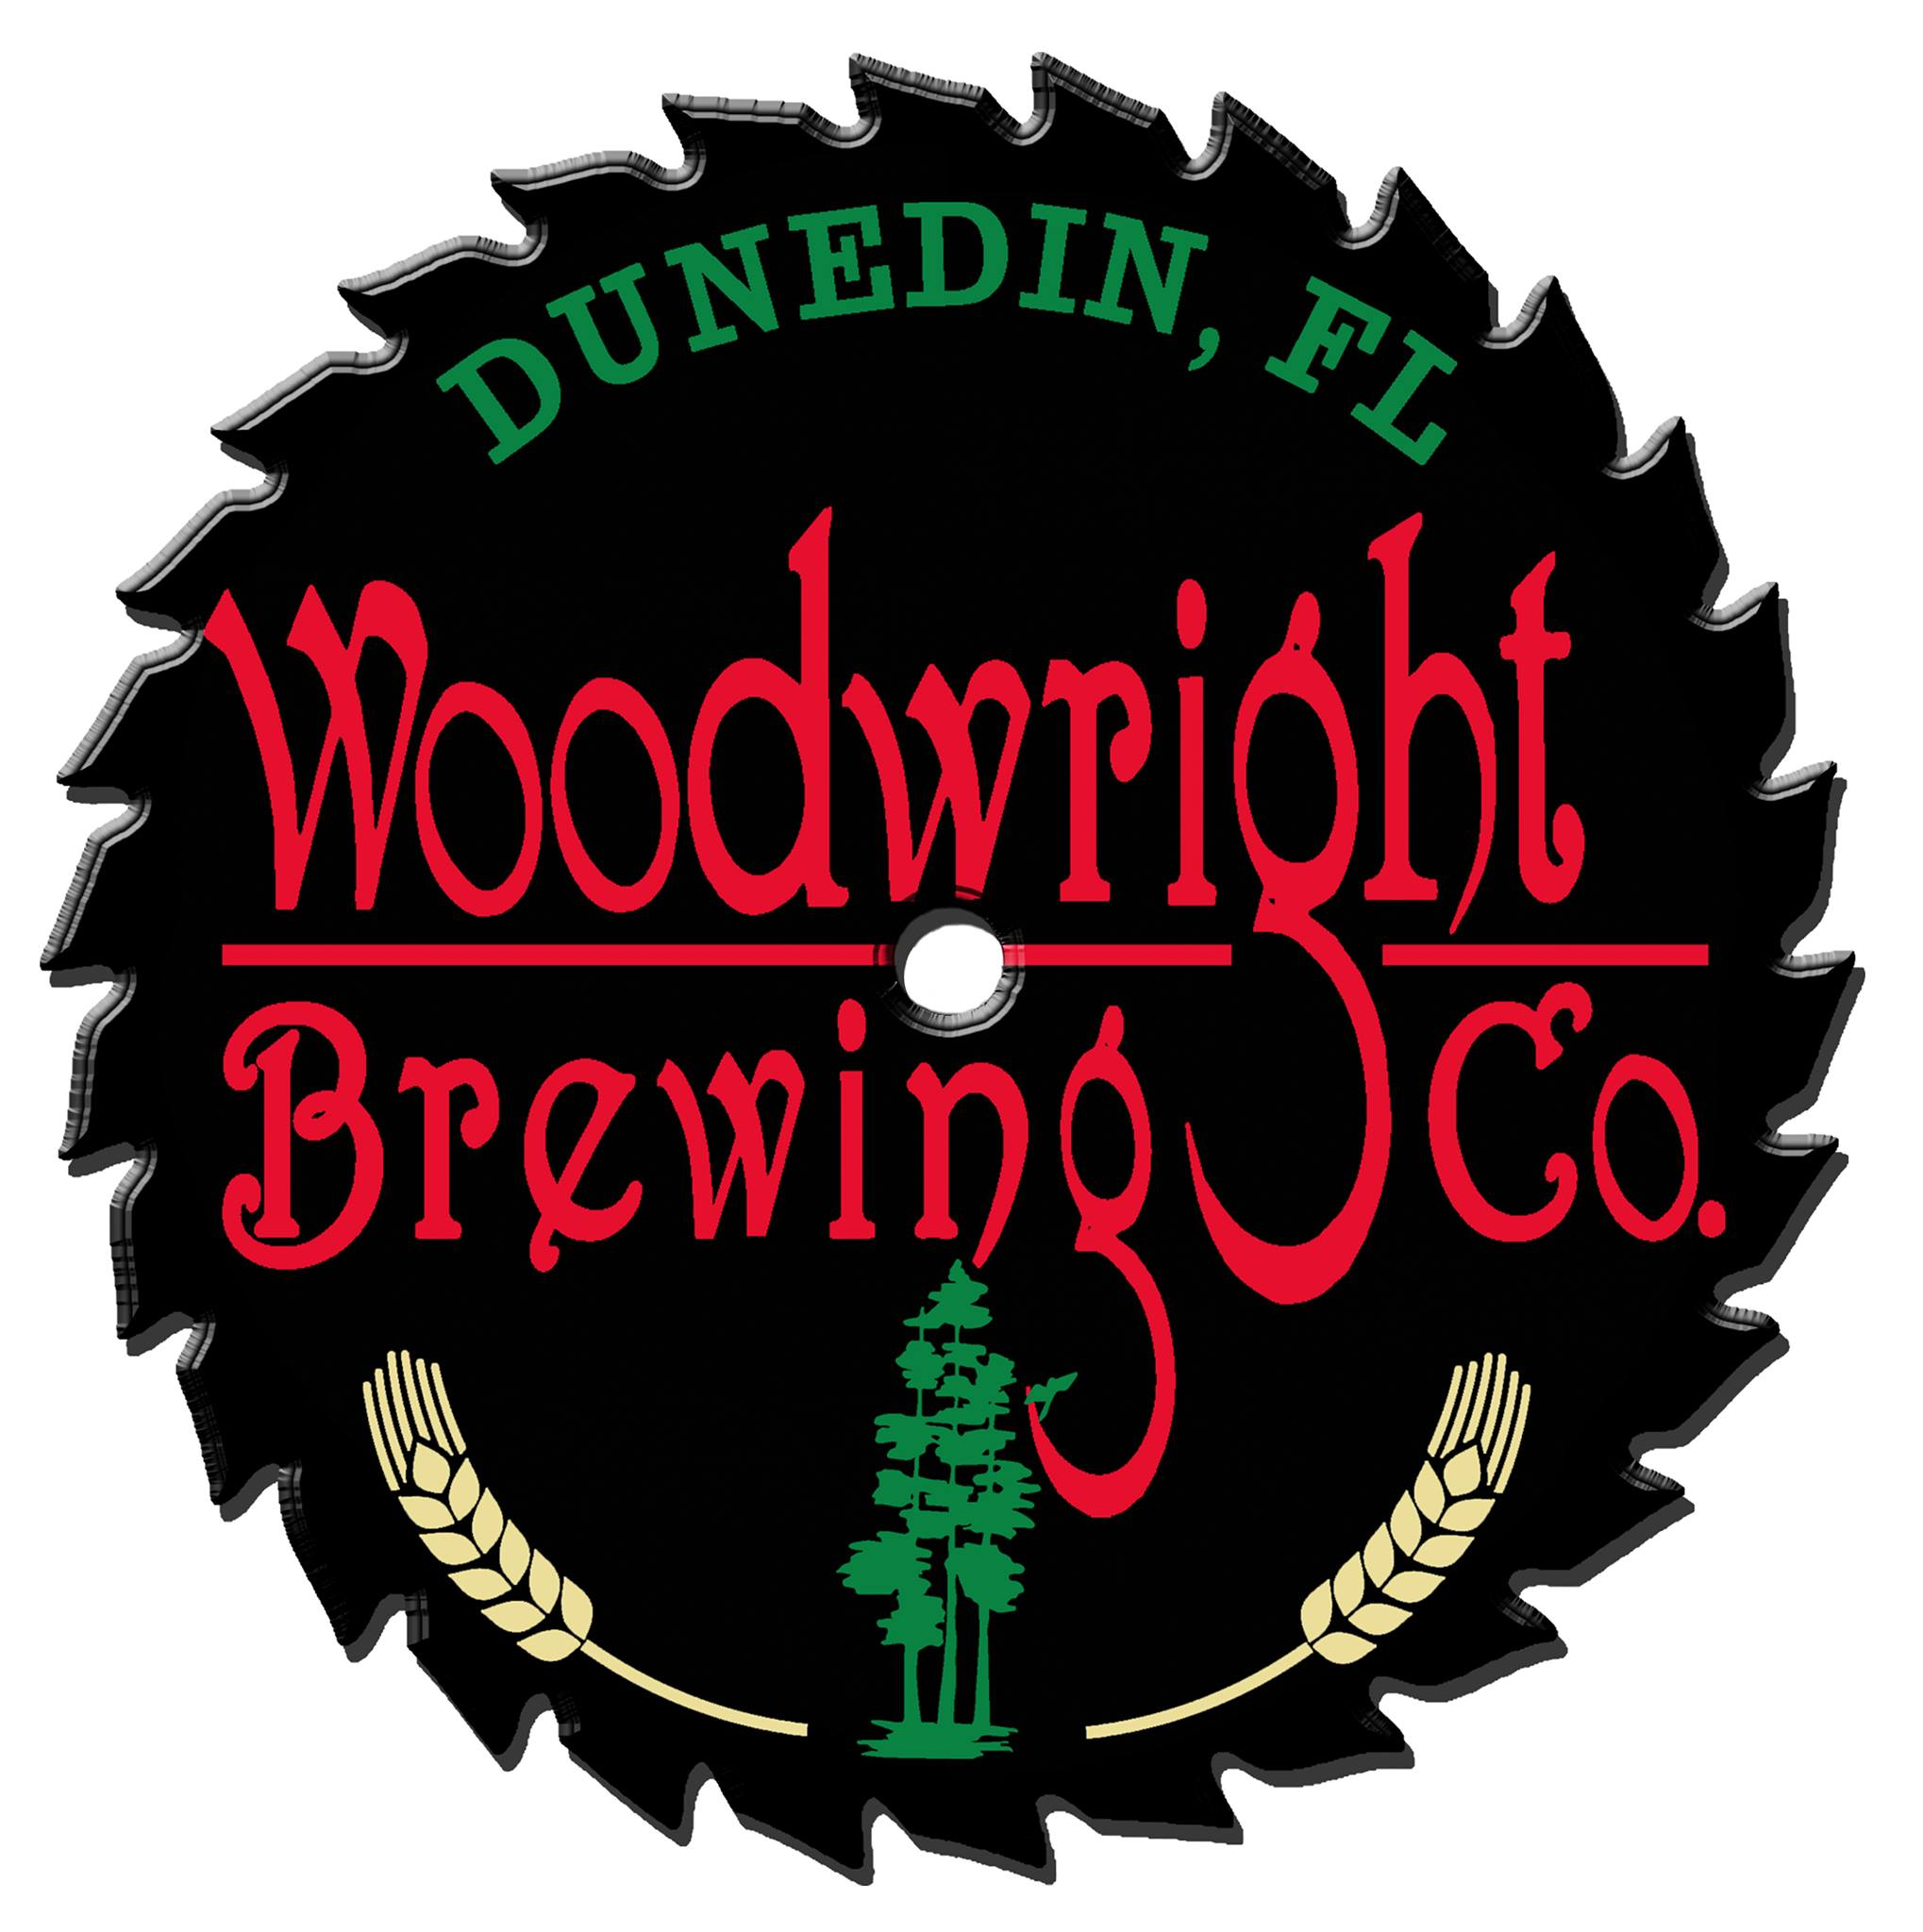 Woodwright Brewing Logo